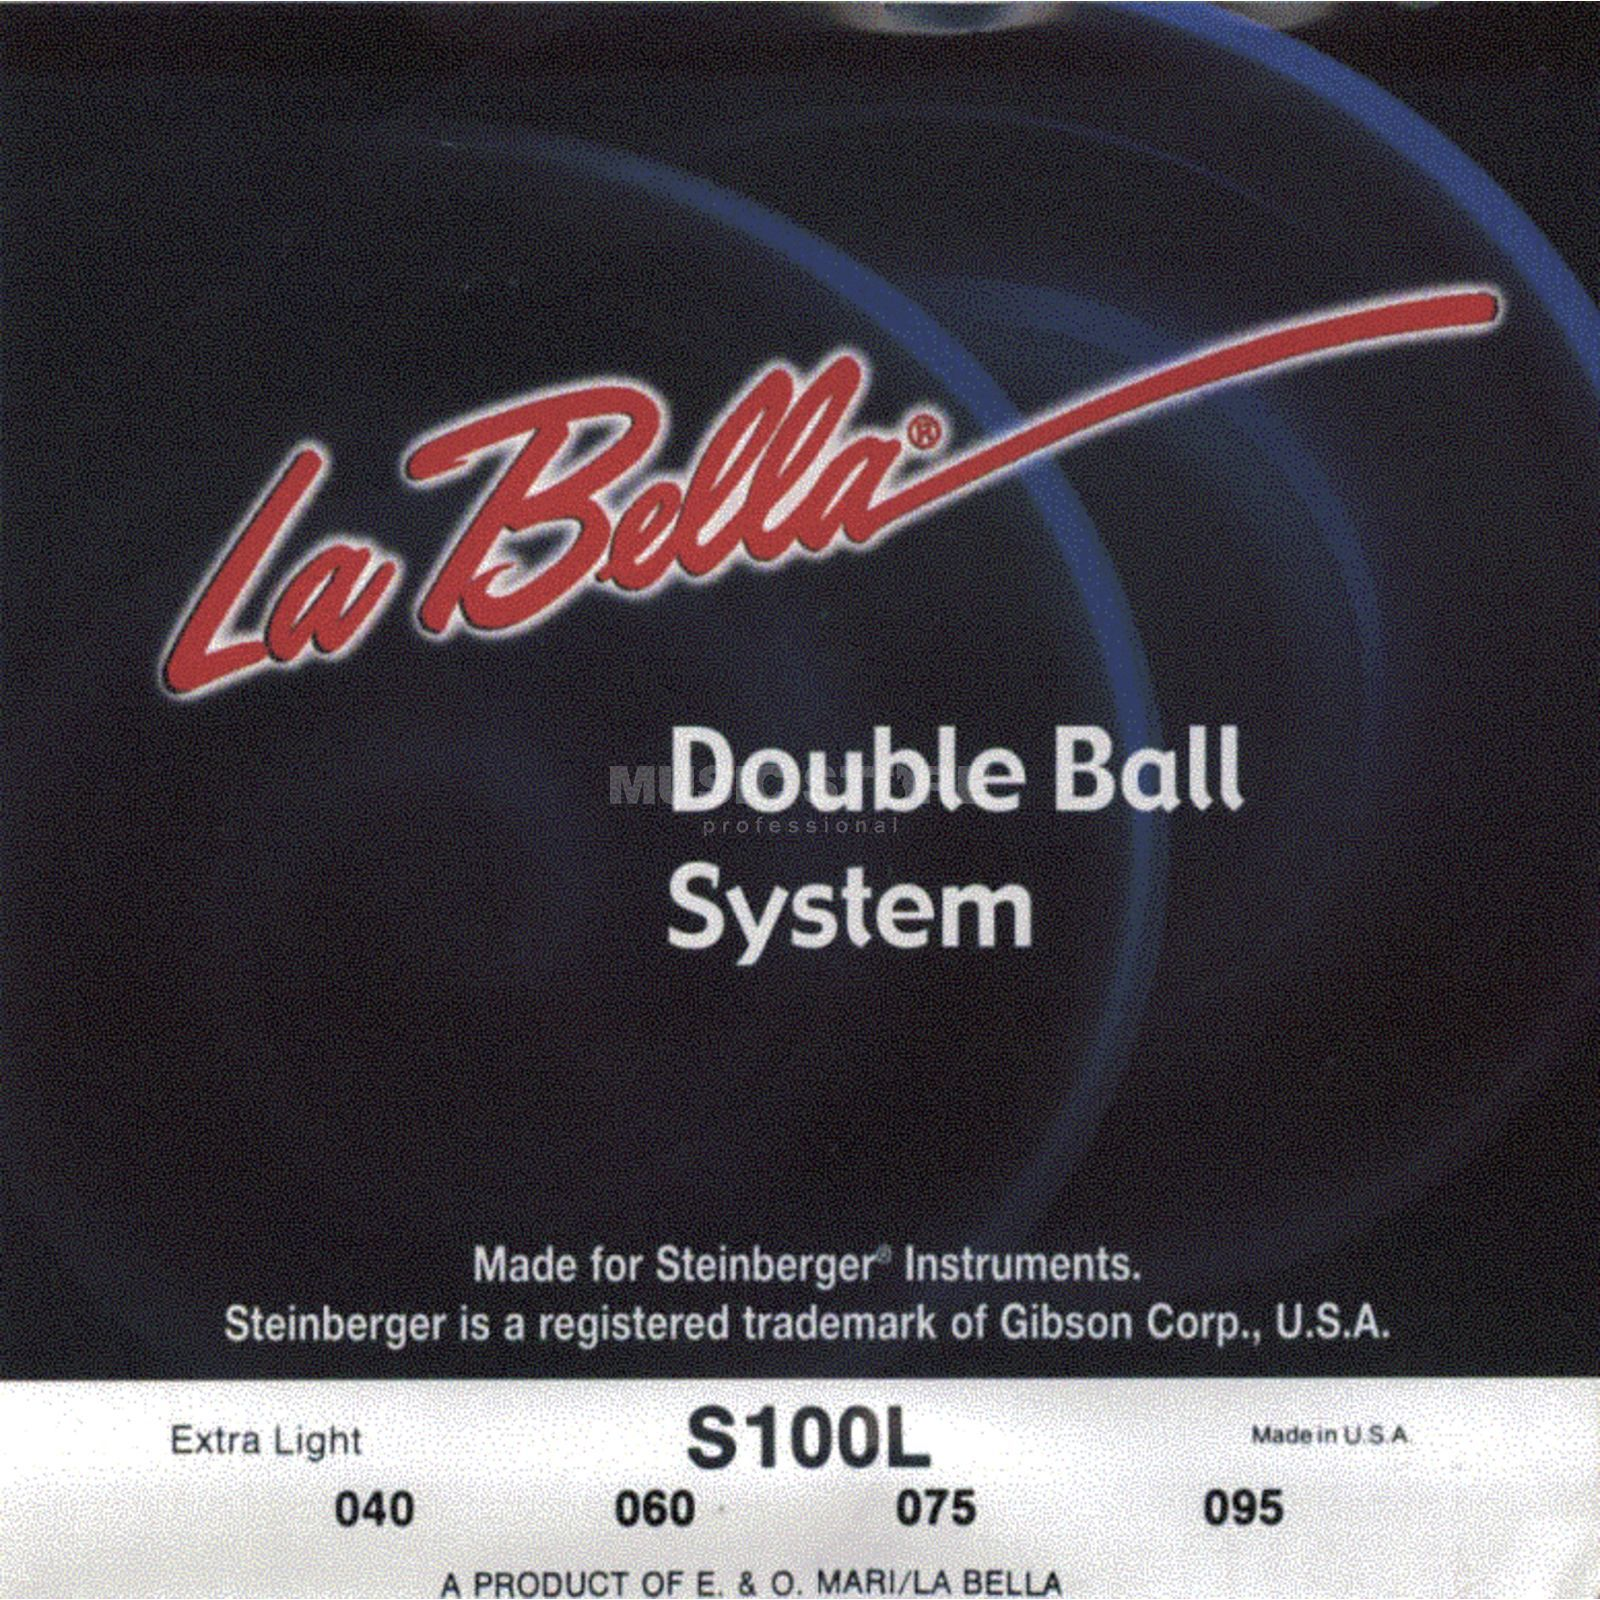 La Bella Jeu 4 cordes 40-095 Double Ball Steinberger Headless  Image du produit